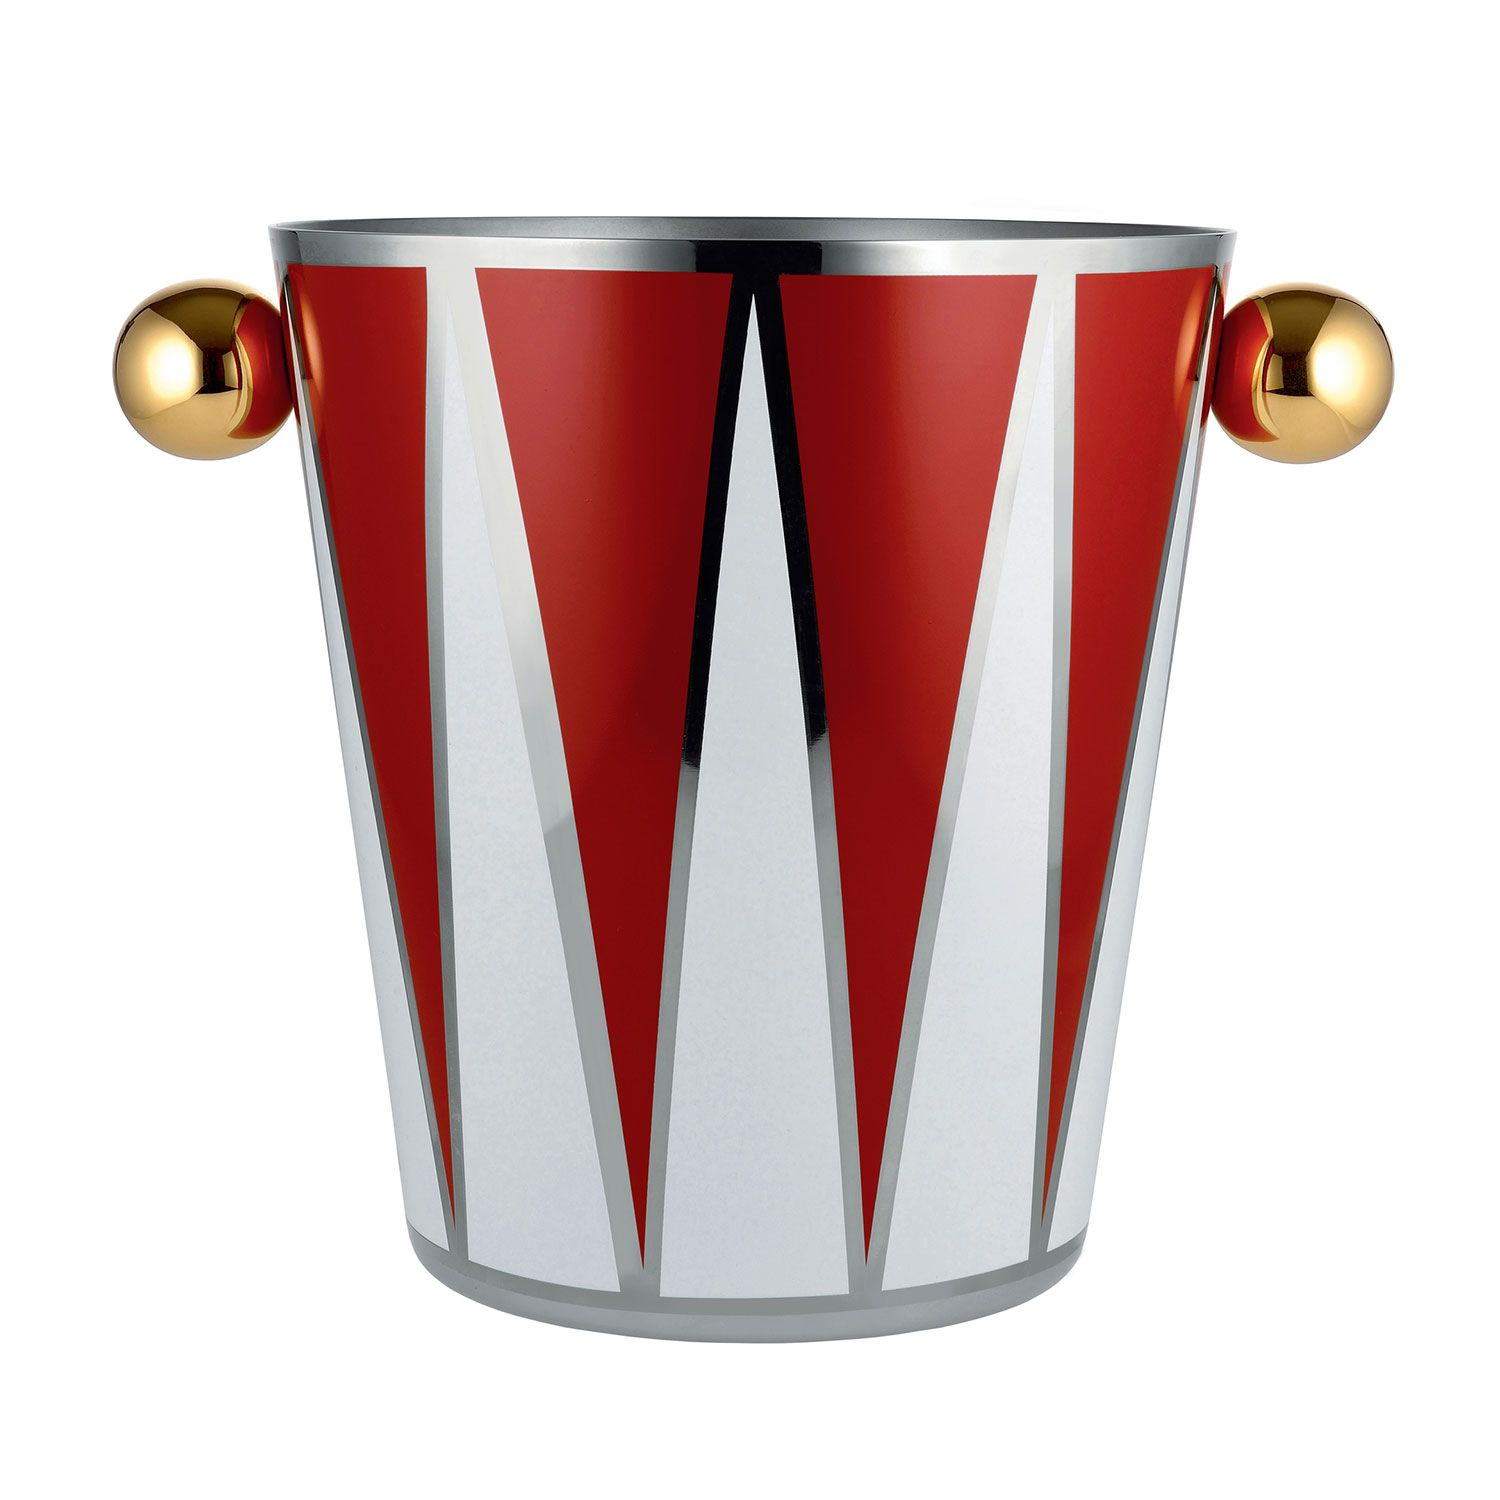 Circus Rafraichisseur A Bouteille Marcel Wanders Alessi Royaldesign Fr Alessi Ice Bucket Wine Cooler